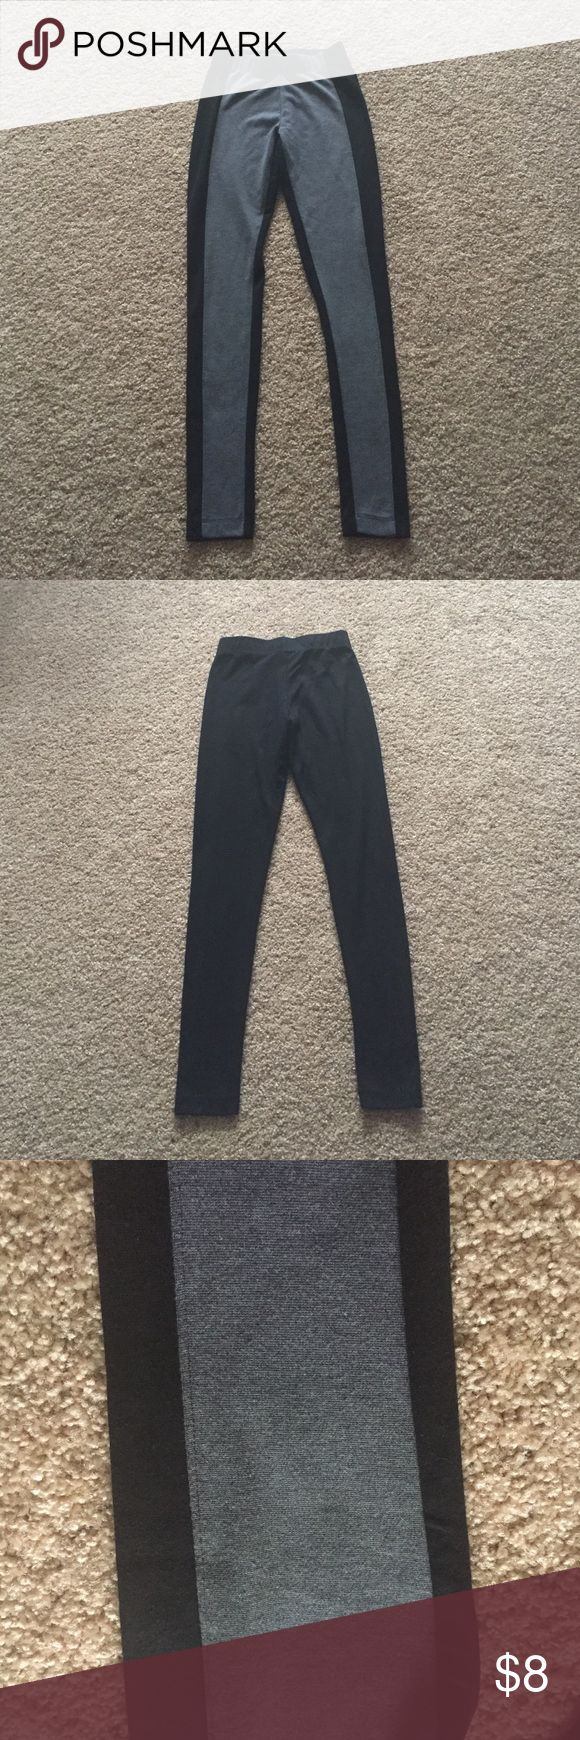 Black and gray leggings In good used condition Mossimo Supply Co. Pants Leggings